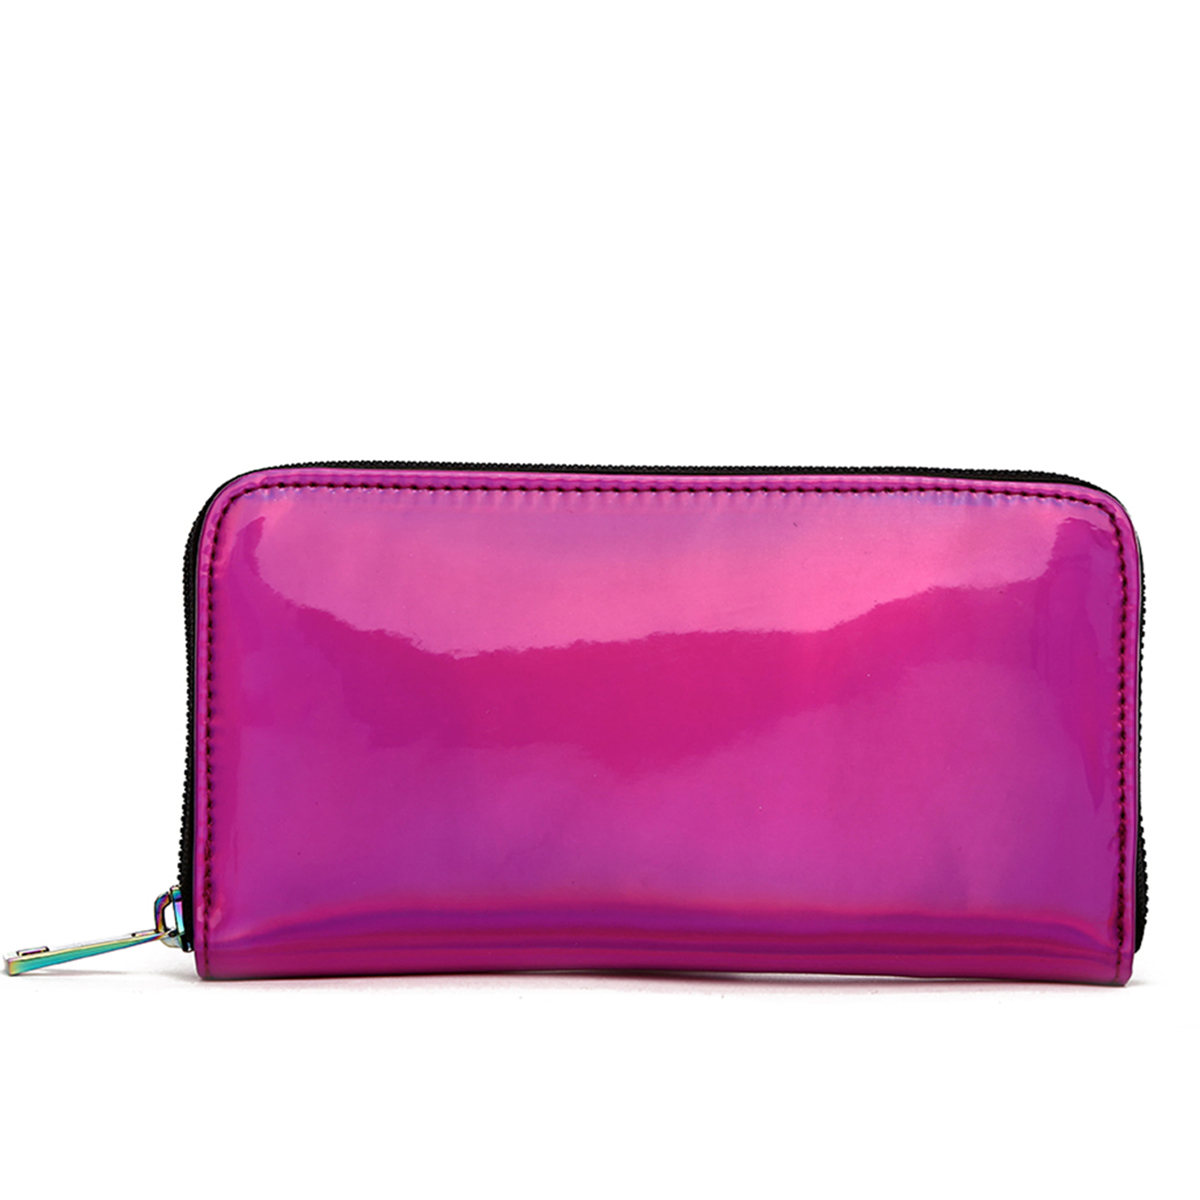 Hologram Zip Around Wallet with Rainbow Zipper Fuchsia